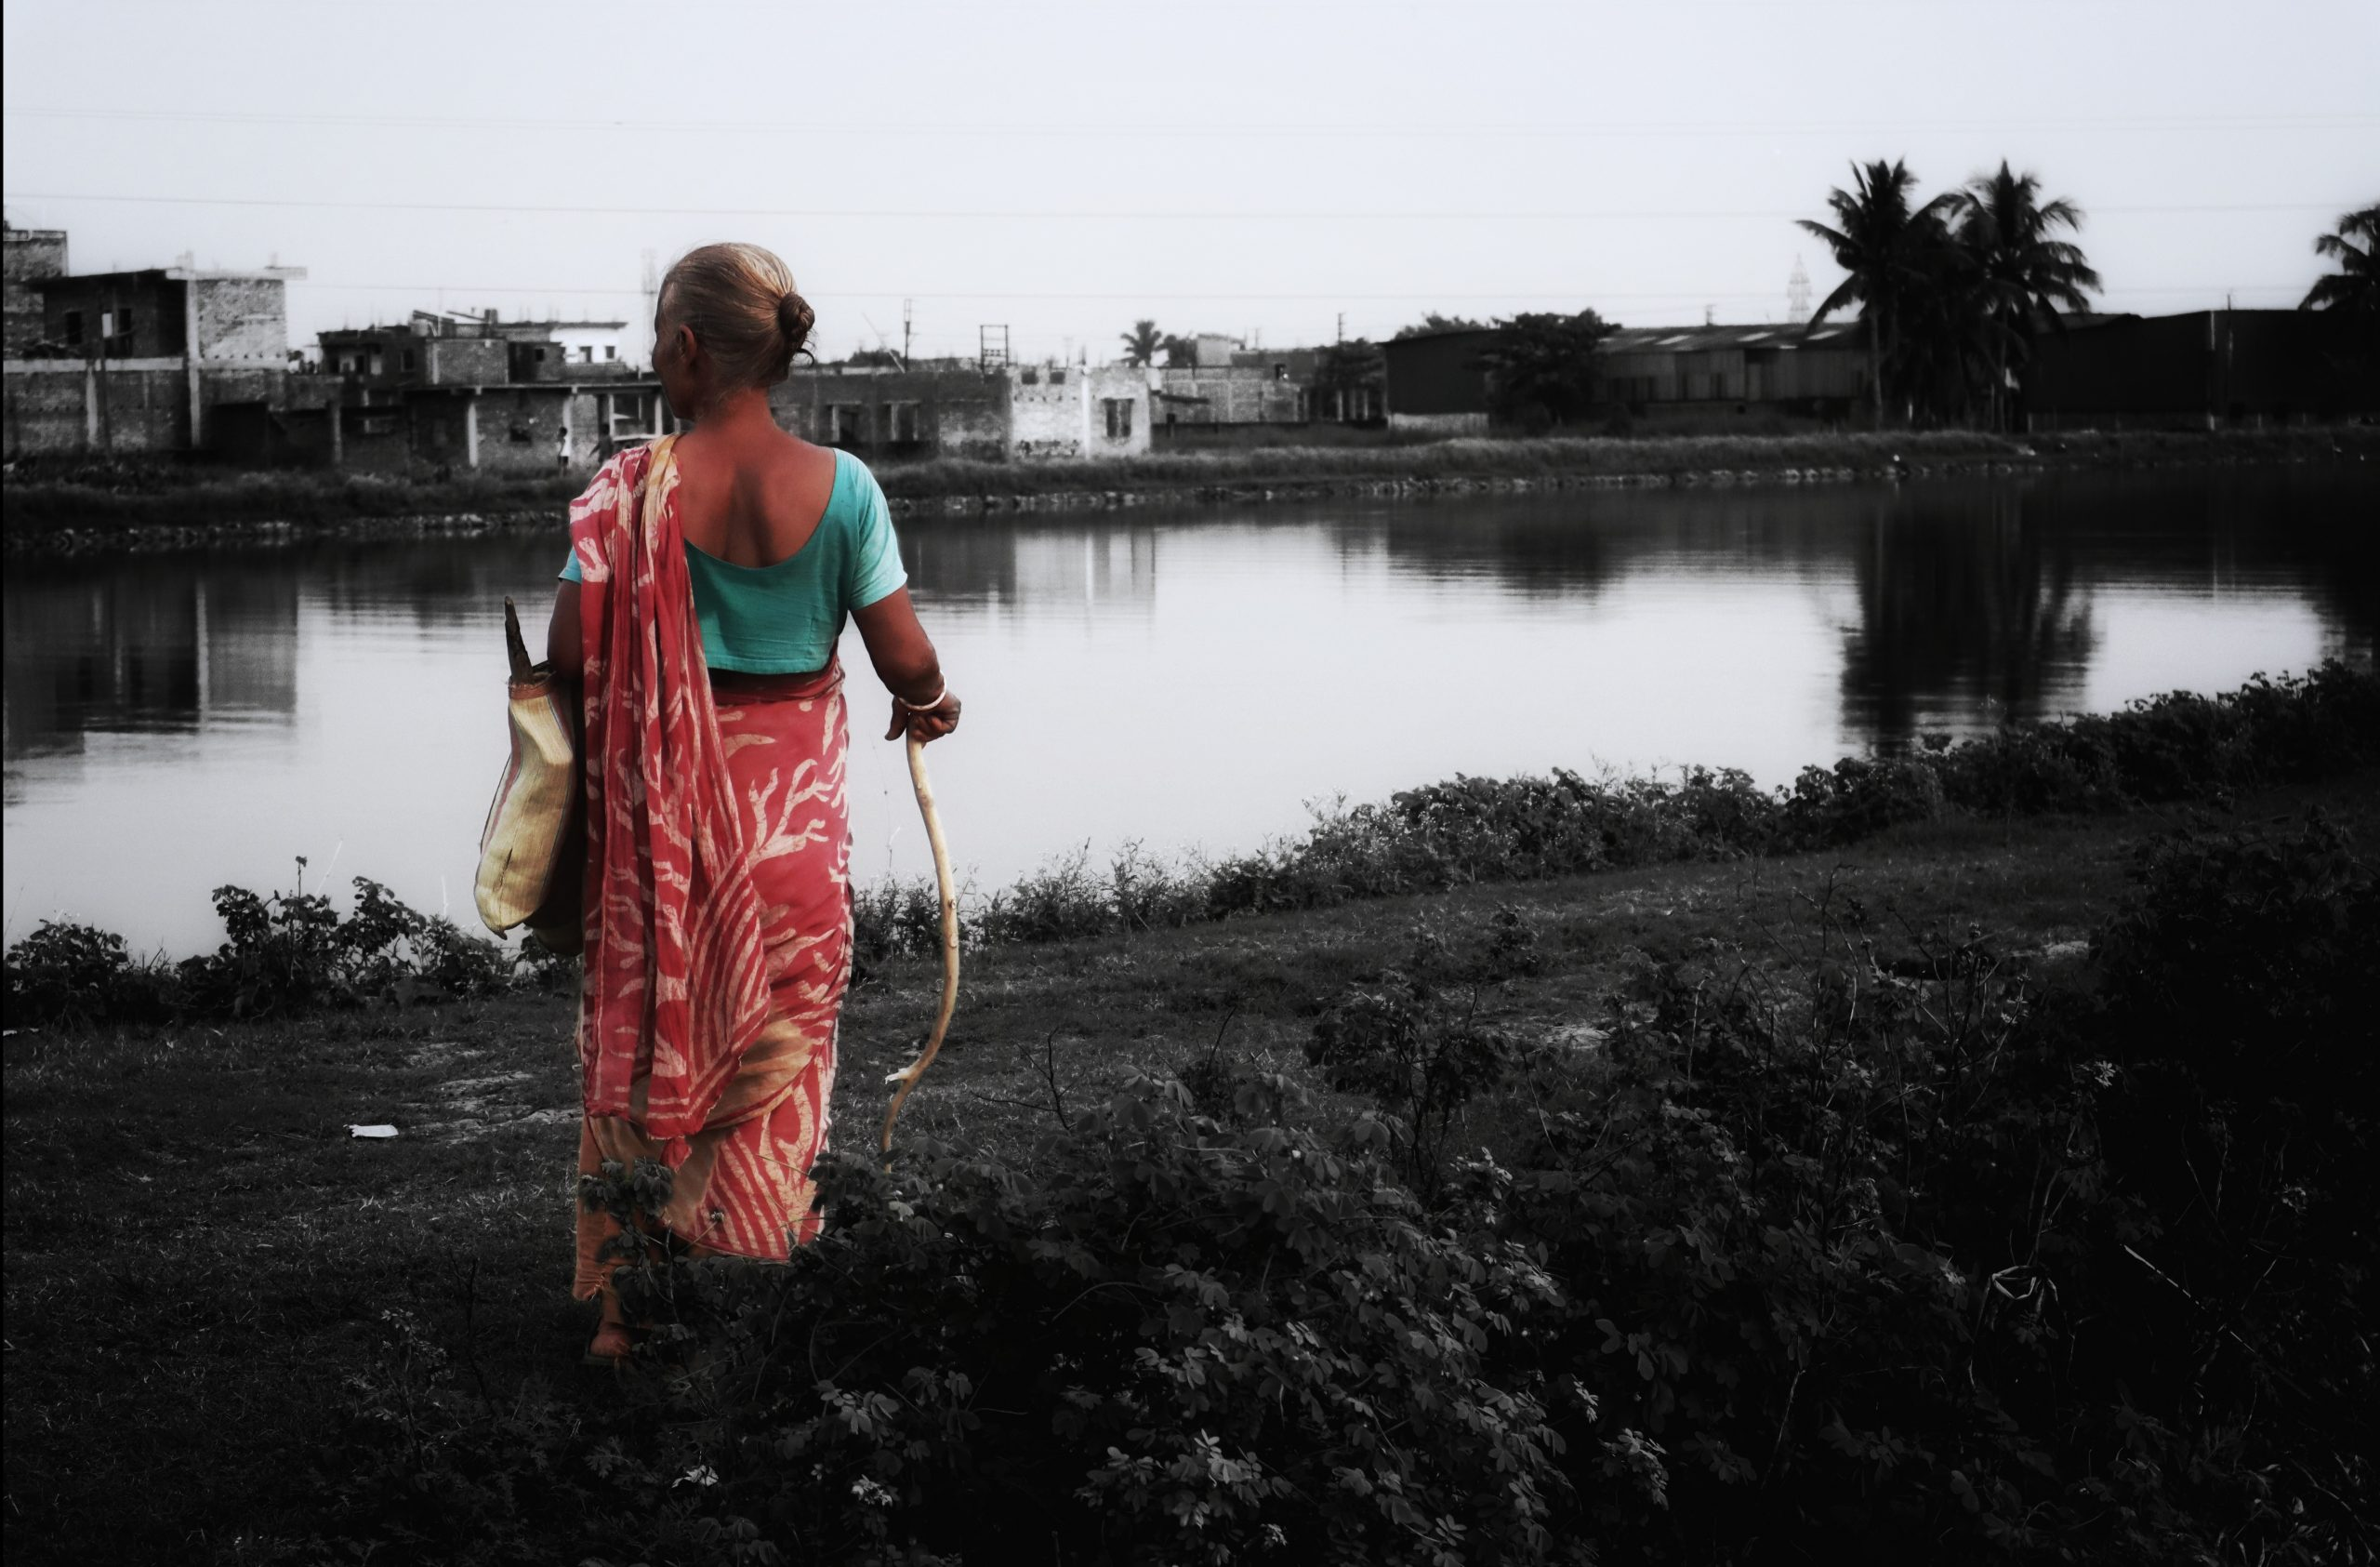 A woman standing next to a pond